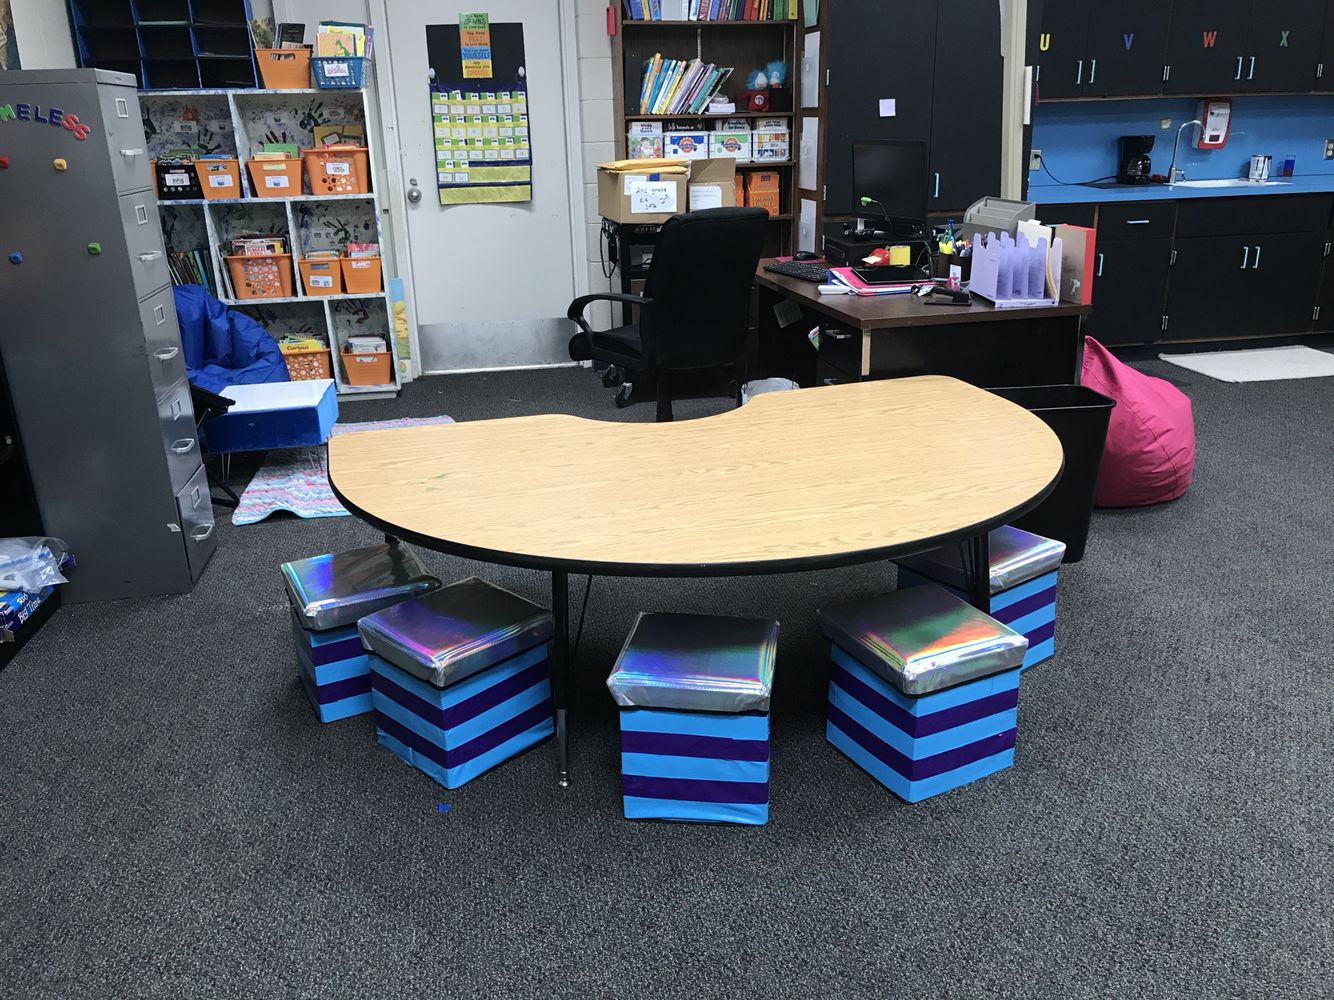 $5 ottomans from Five Below, make great flexible seating ...